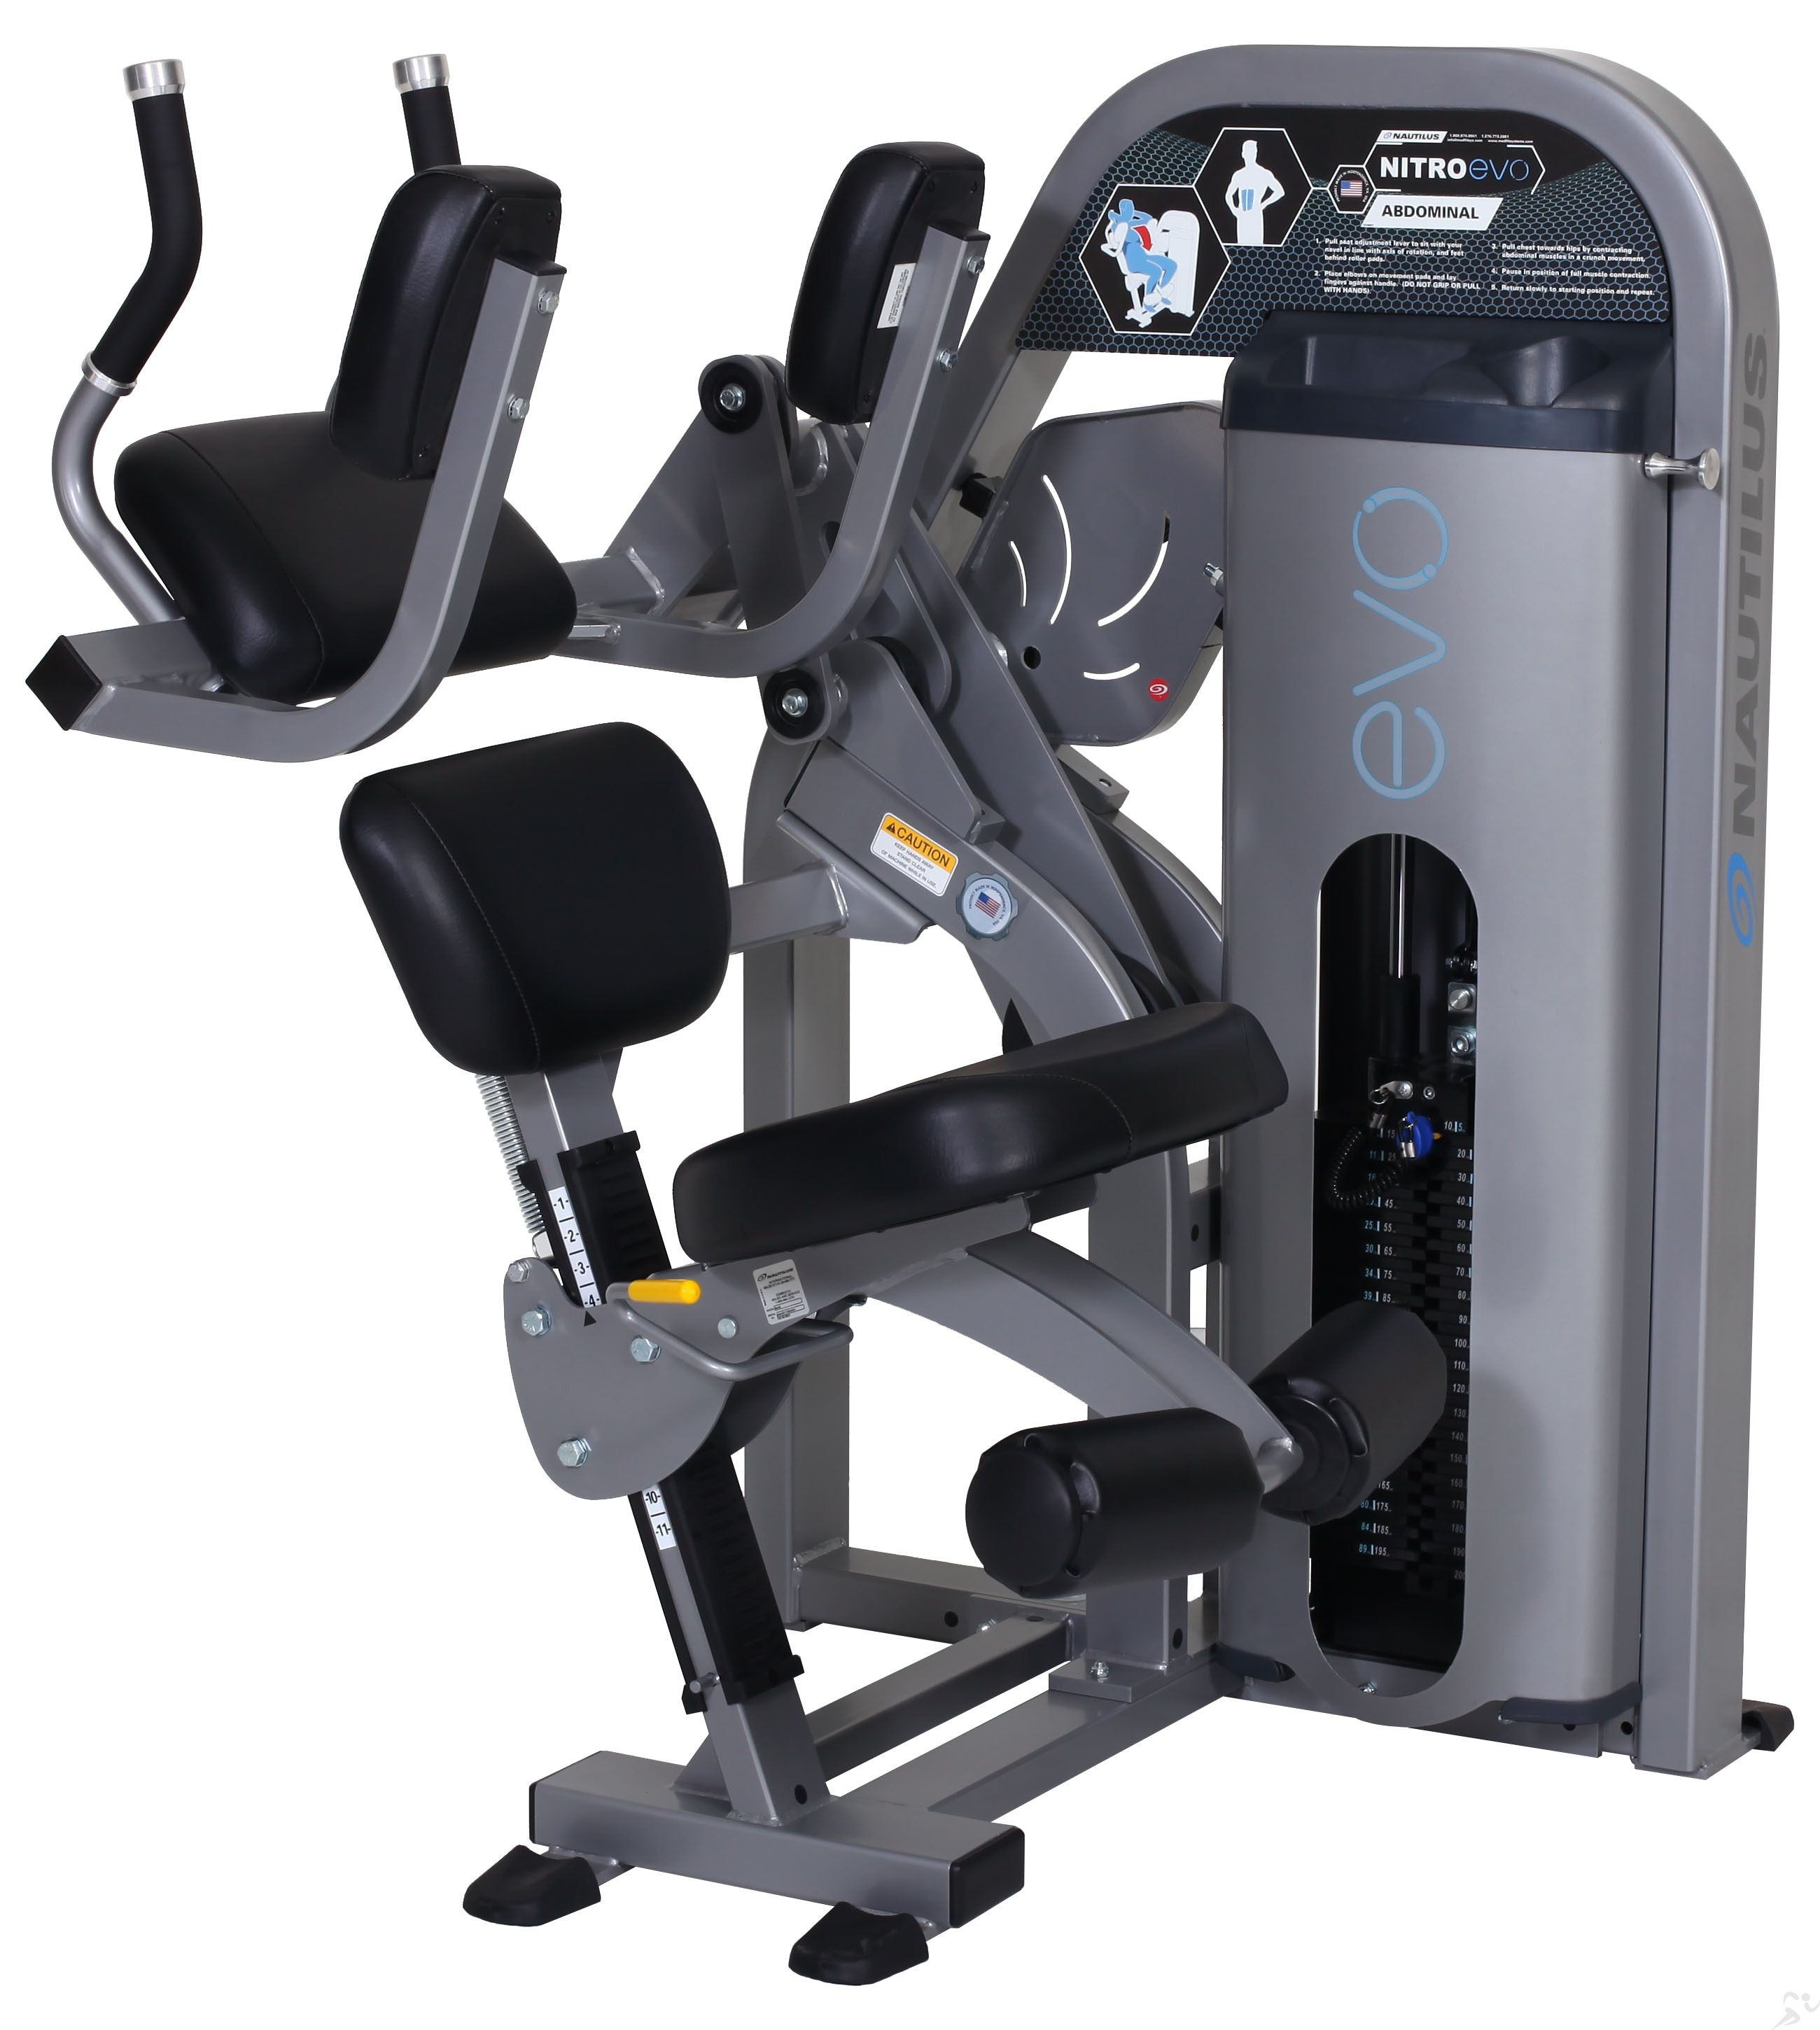 Pin On My Favorite Work Out Machines